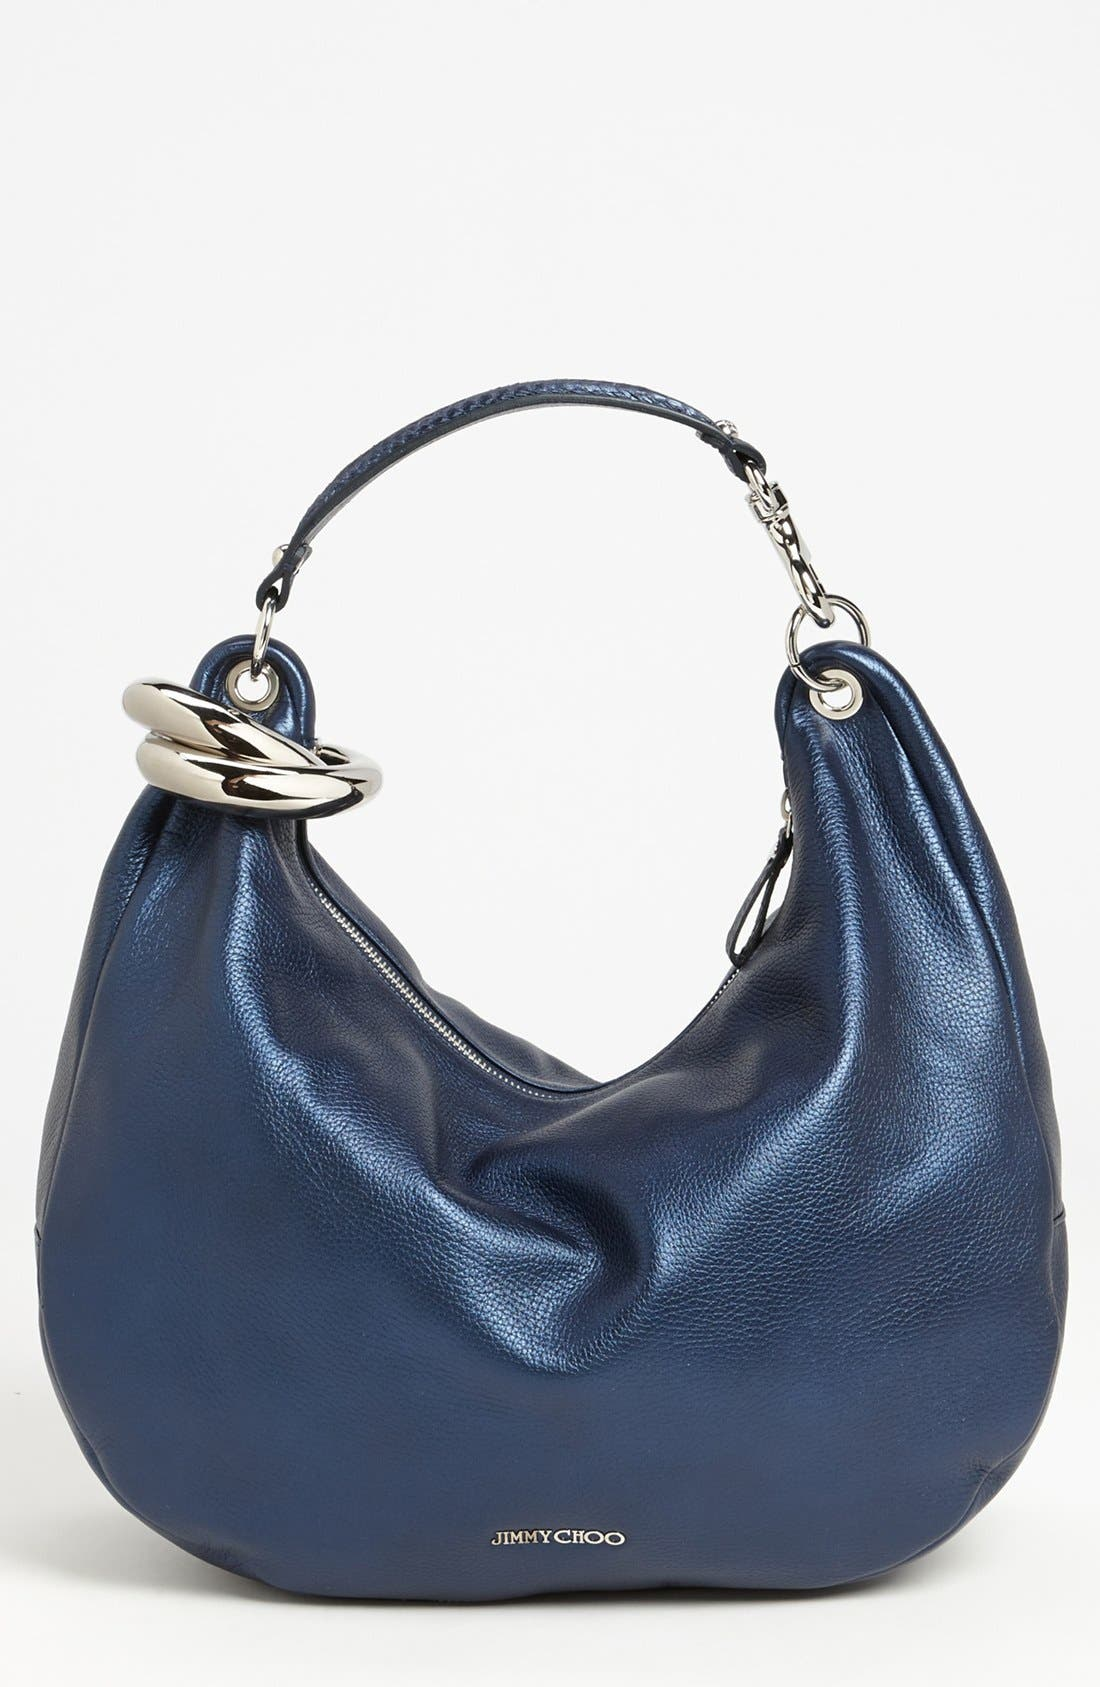 Main Image - Jimmy Choo 'Solar - Large' Pearlized Metallic Leather Hobo